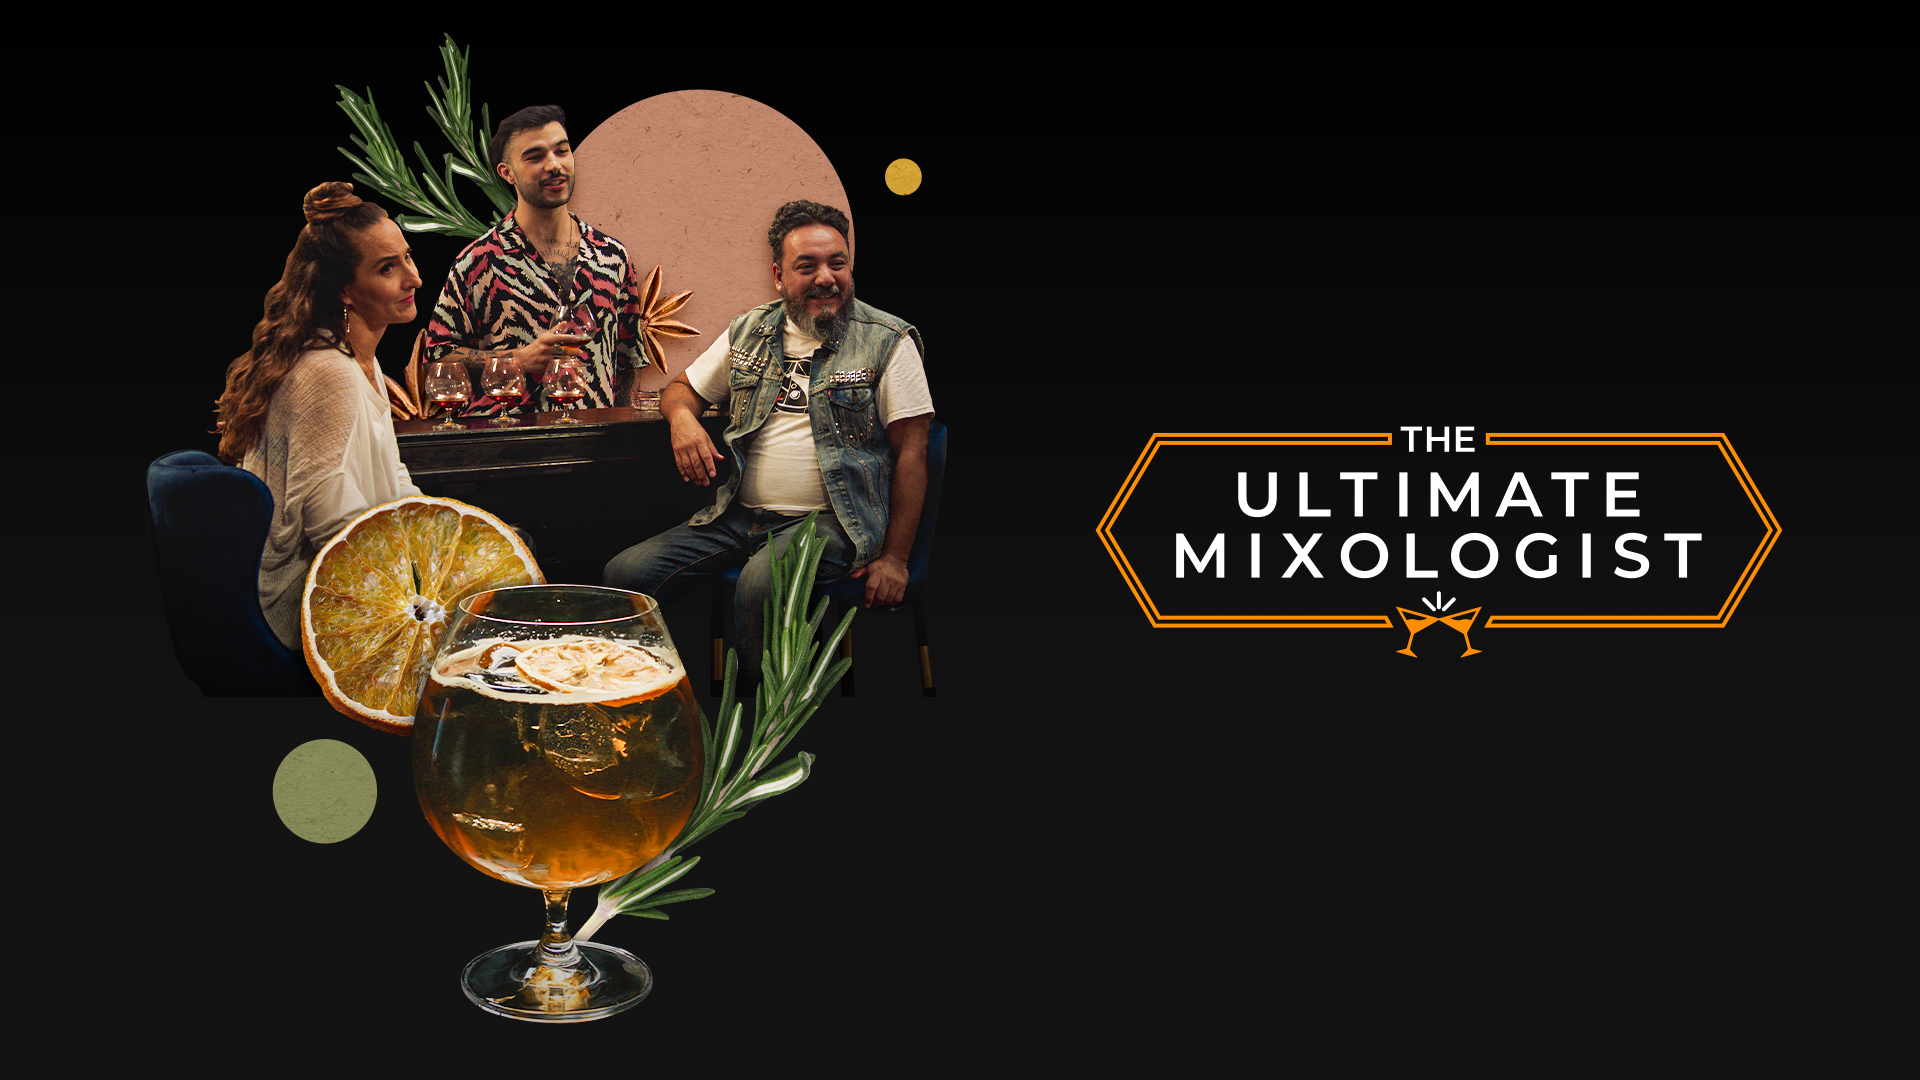 The Ultimate Mixologist